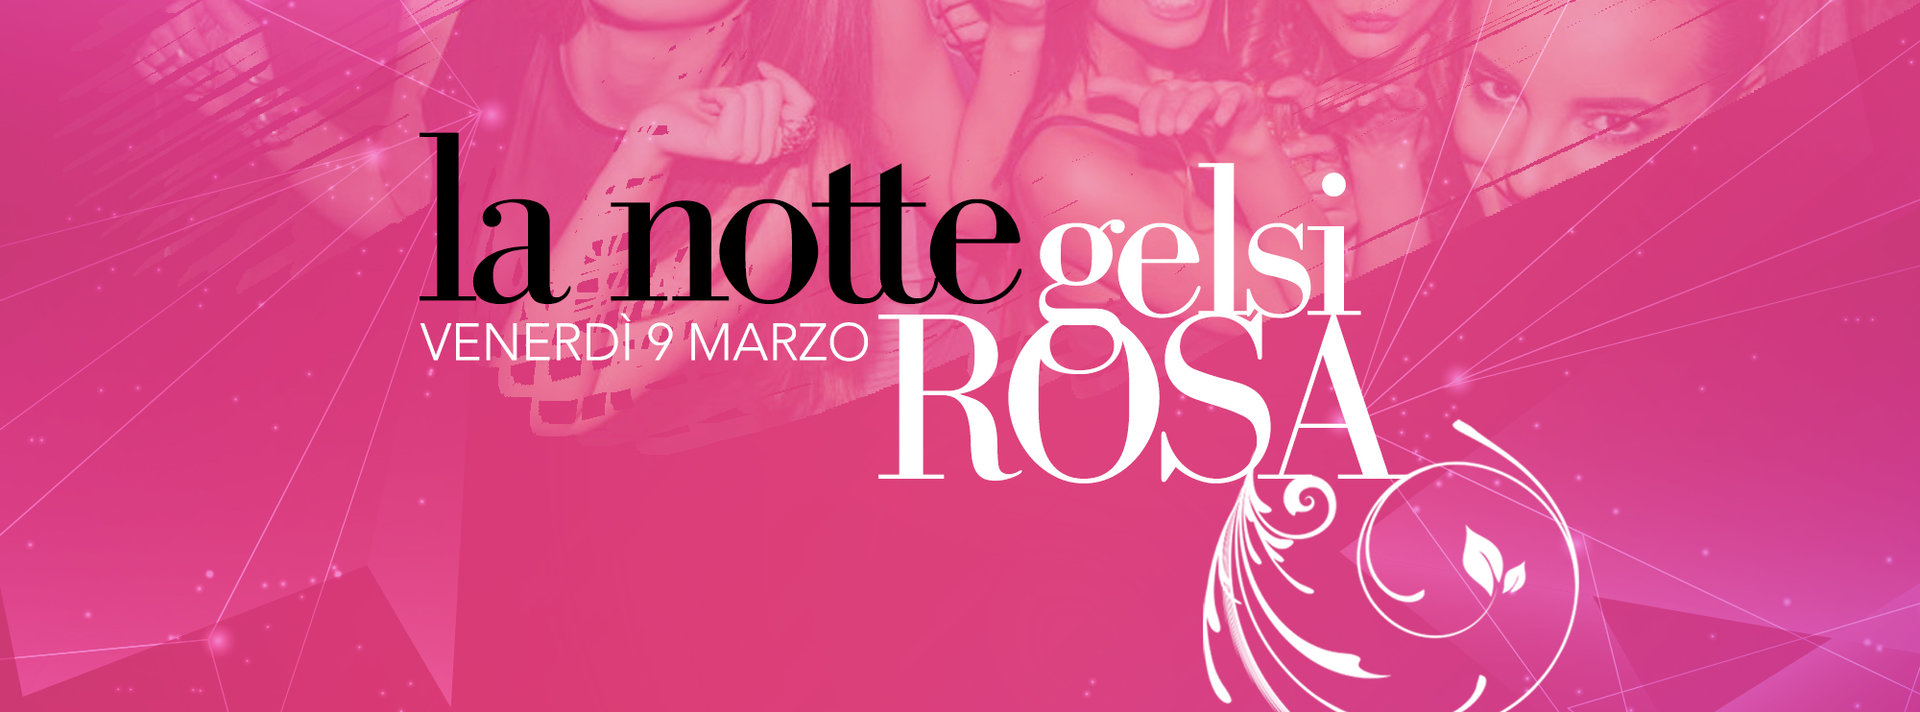 Notte rosa Gelsi - 9 marzo 2018